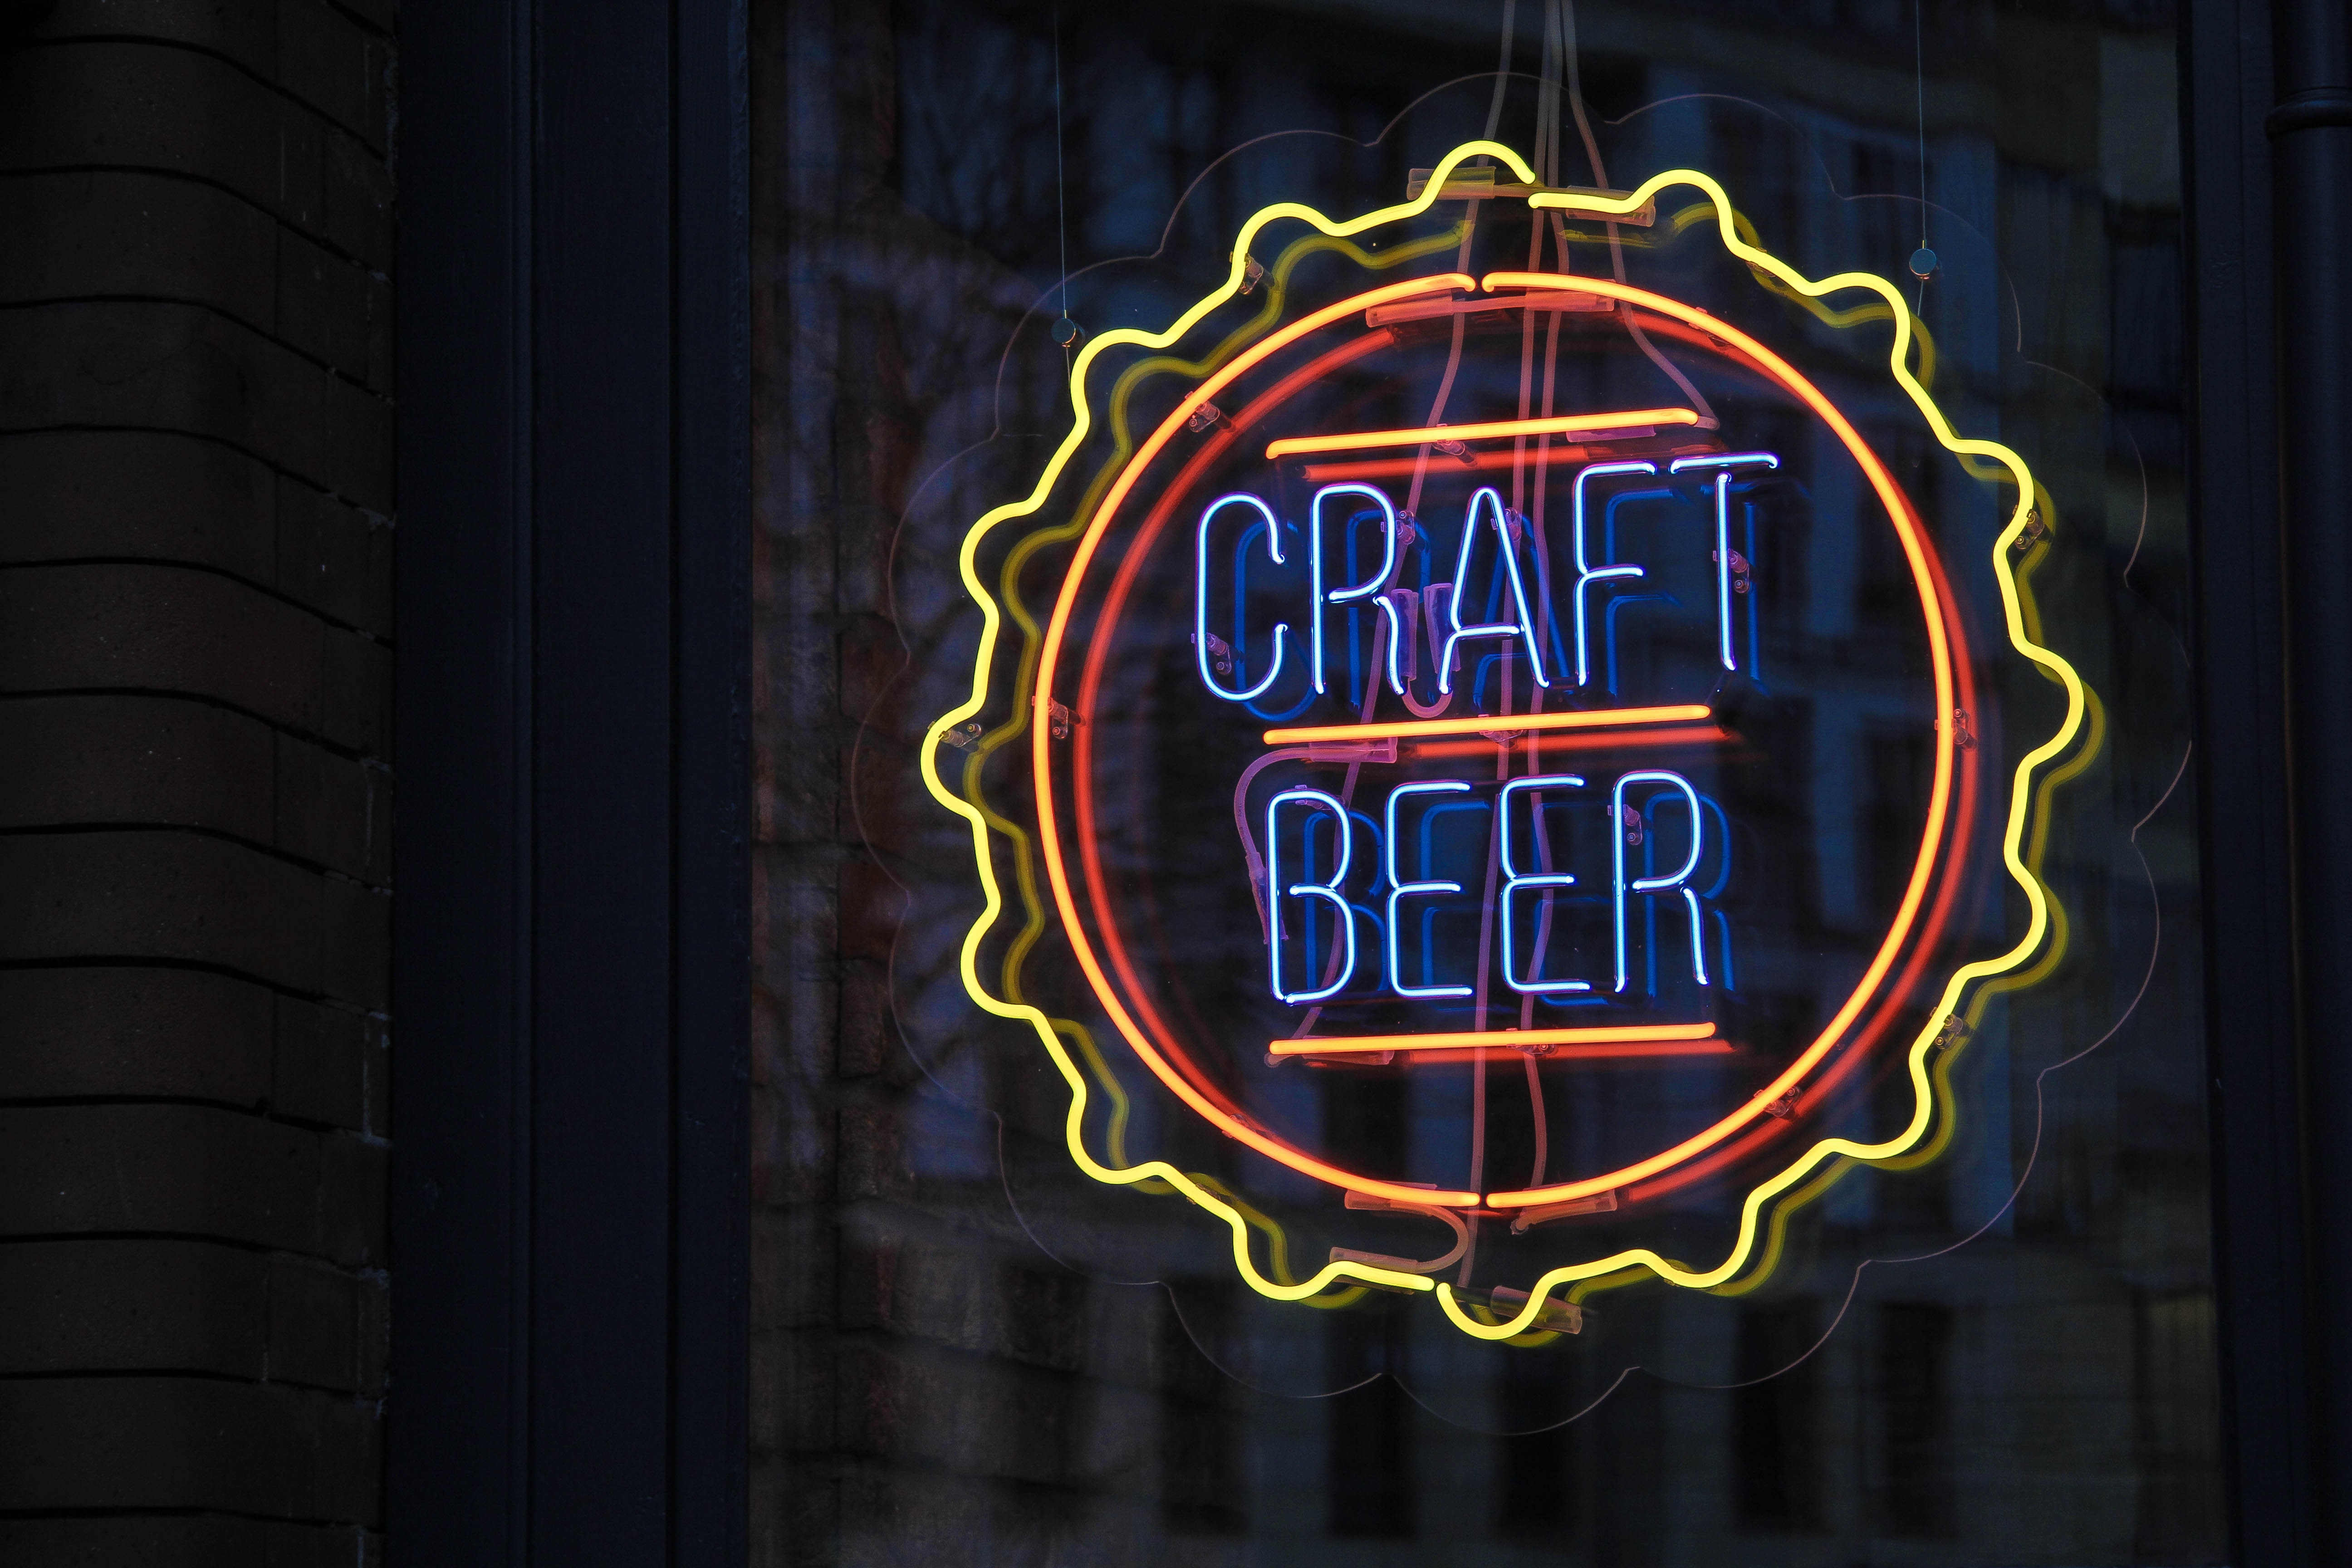 Craft beer tap neon